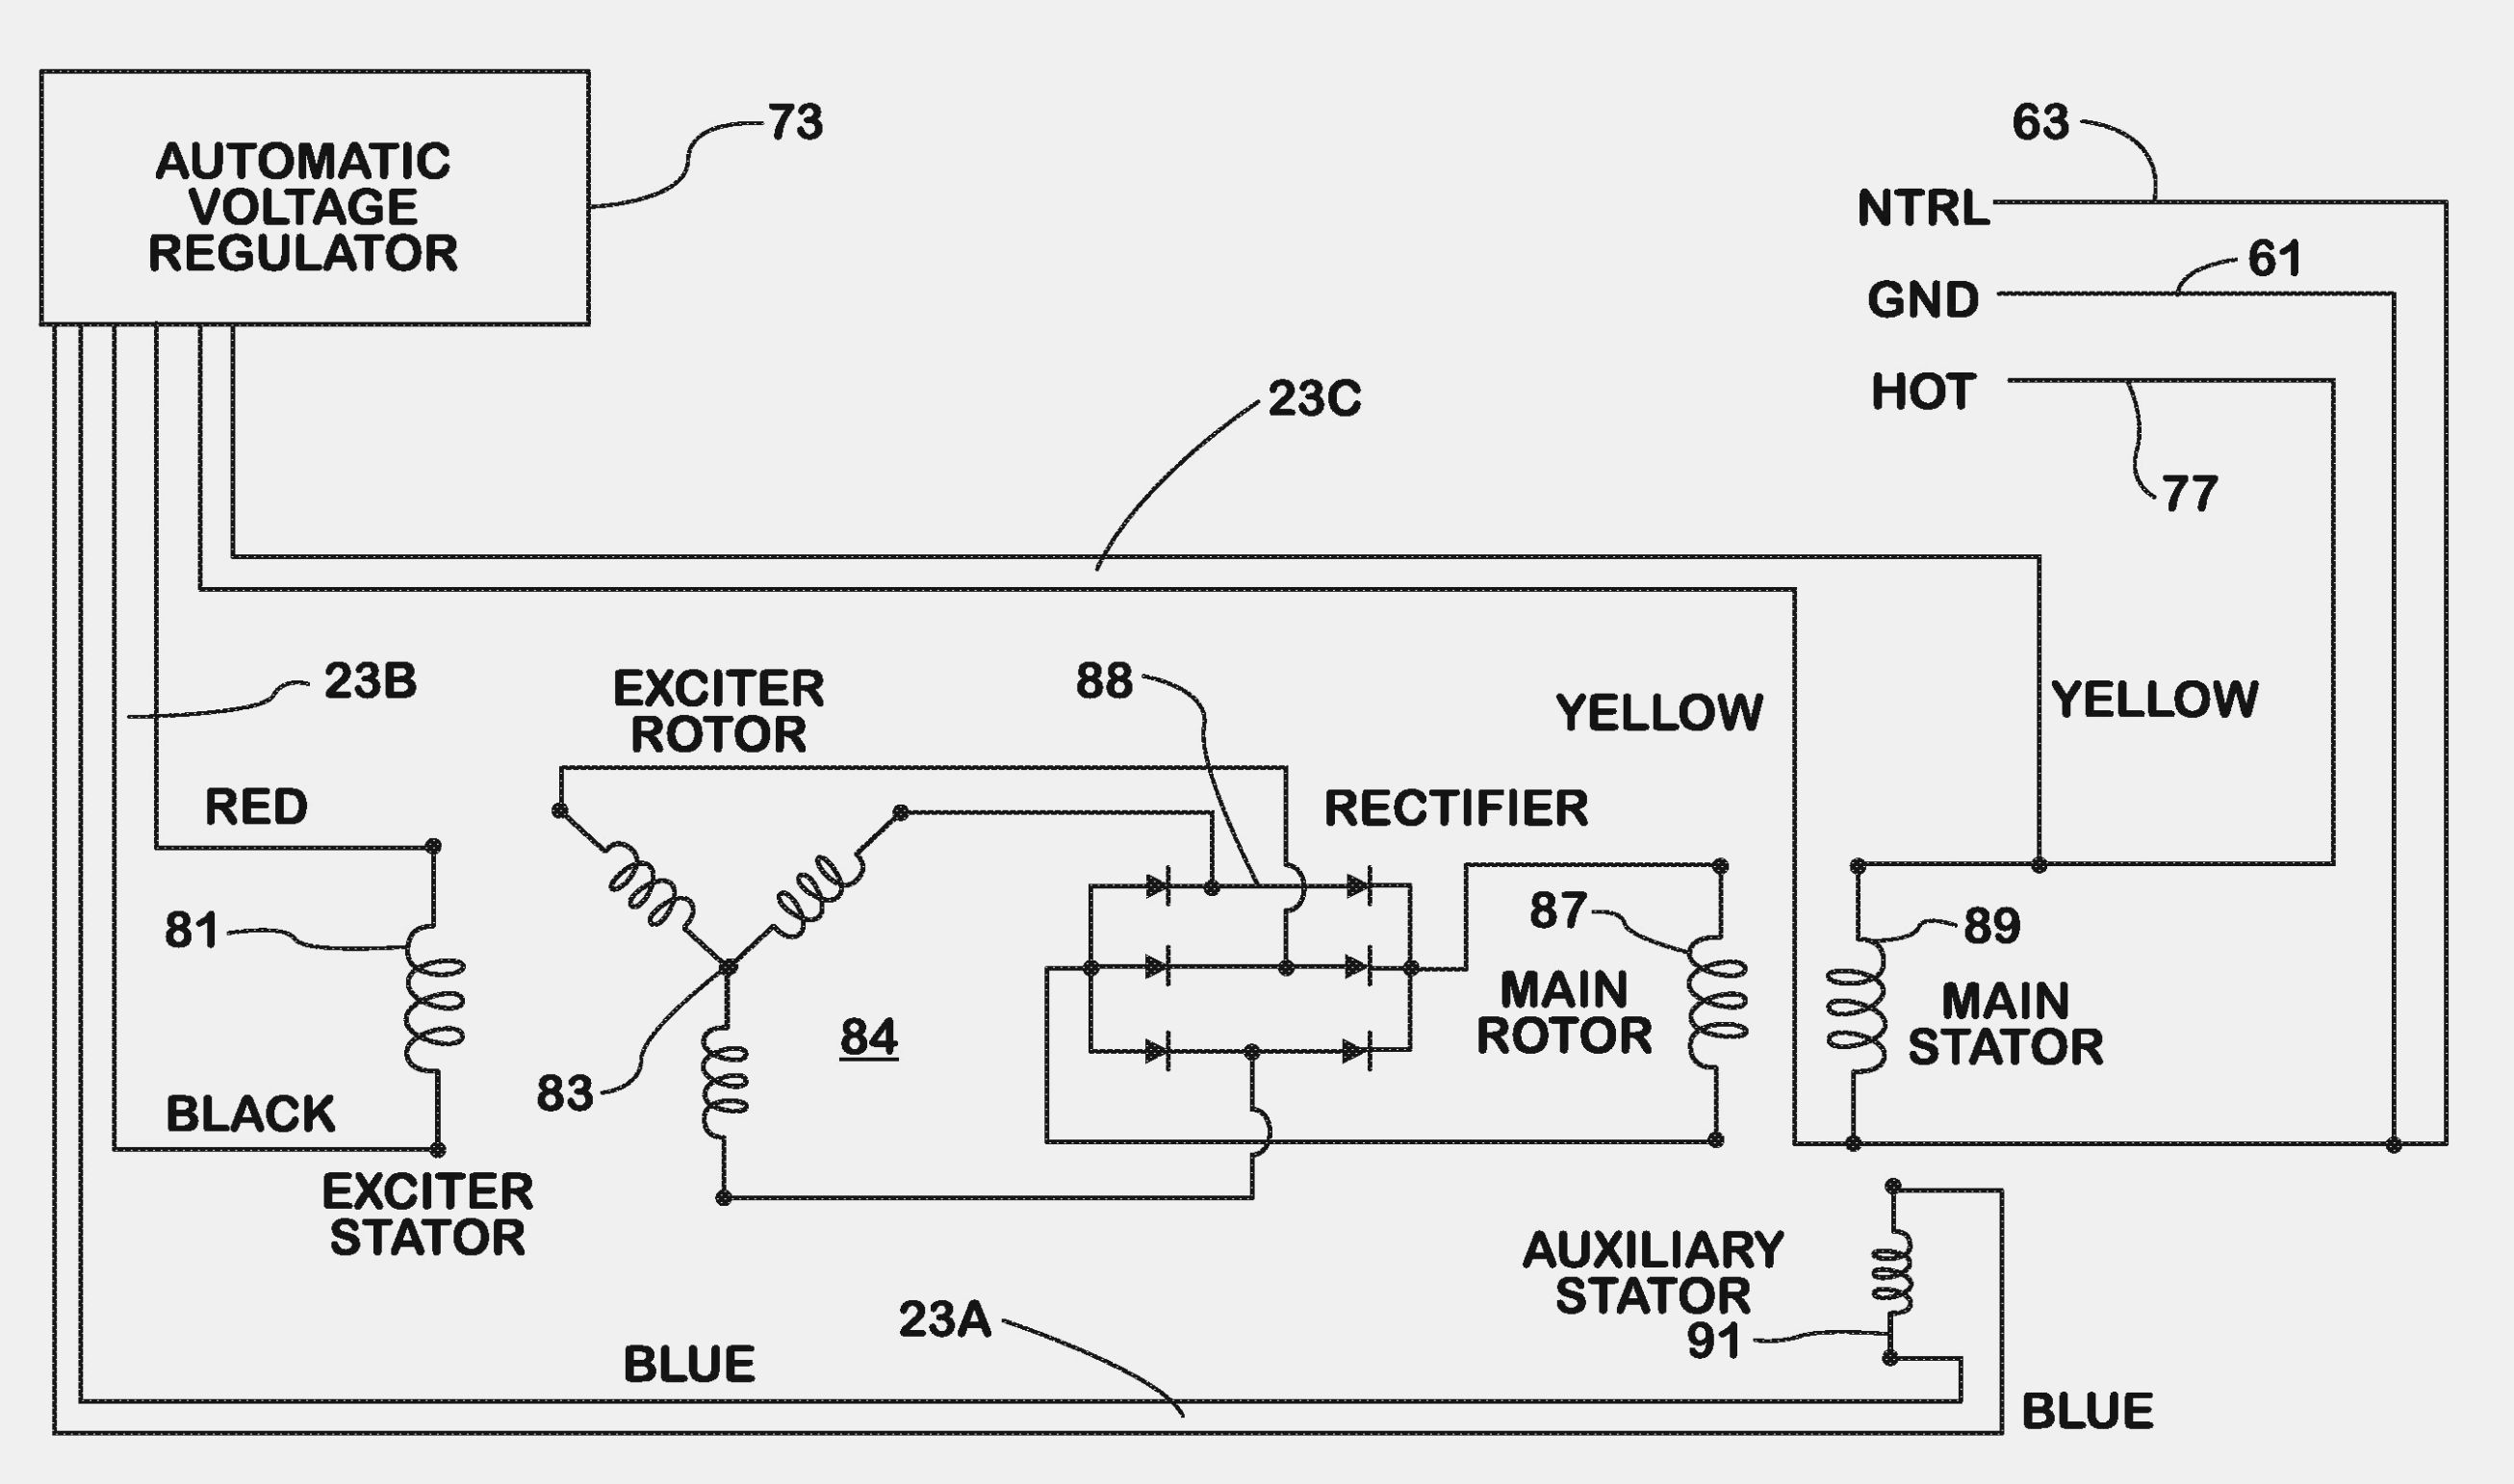 Ac Generator Schematics - Wiring Diagram Tri on diesel generator diagram, generator breaker diagram, wind generator diagram, generator connection diagram, turbine generator diagram, generator block diagram, simple generator diagram, digital electronics, data flow diagram, function block diagram, generator wiring diagram, one-line diagram, integrated circuit layout, generator coil diagram, network analysis, brushless generator diagram, generator electrical diagram, gas generator diagram, generator circuit symbol, generator engine diagram, block diagram, generator switchgear diagram, generator building diagram, generator parts diagram, generator diagrams how it works, circuit design, generator component diagram, generator wire diagram, wiring diagram,